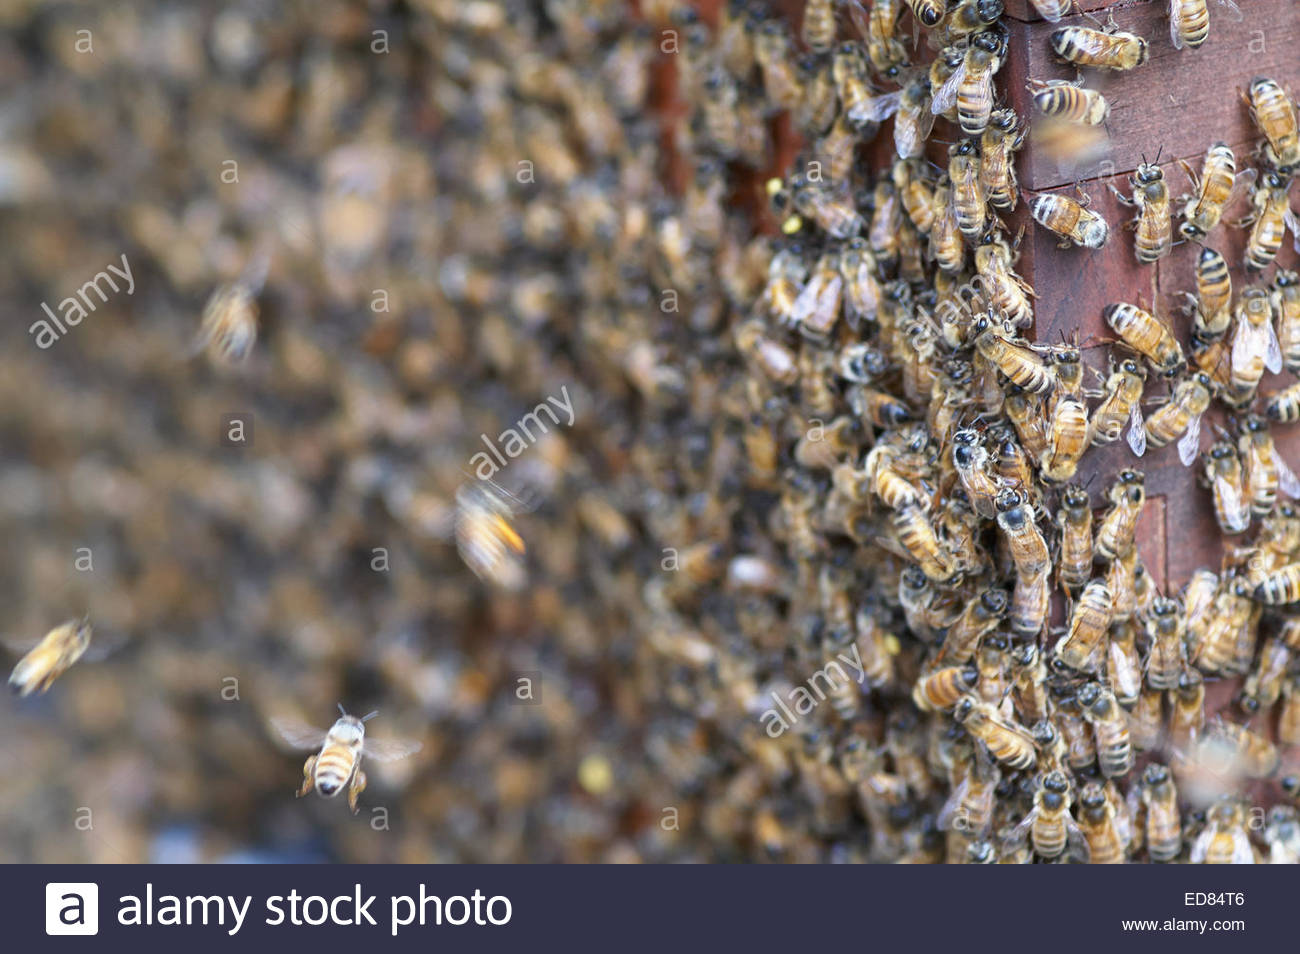 Honeybees on the outside of the beehive, clustered together - some in flight - they often handle hot weather by - Stock Image